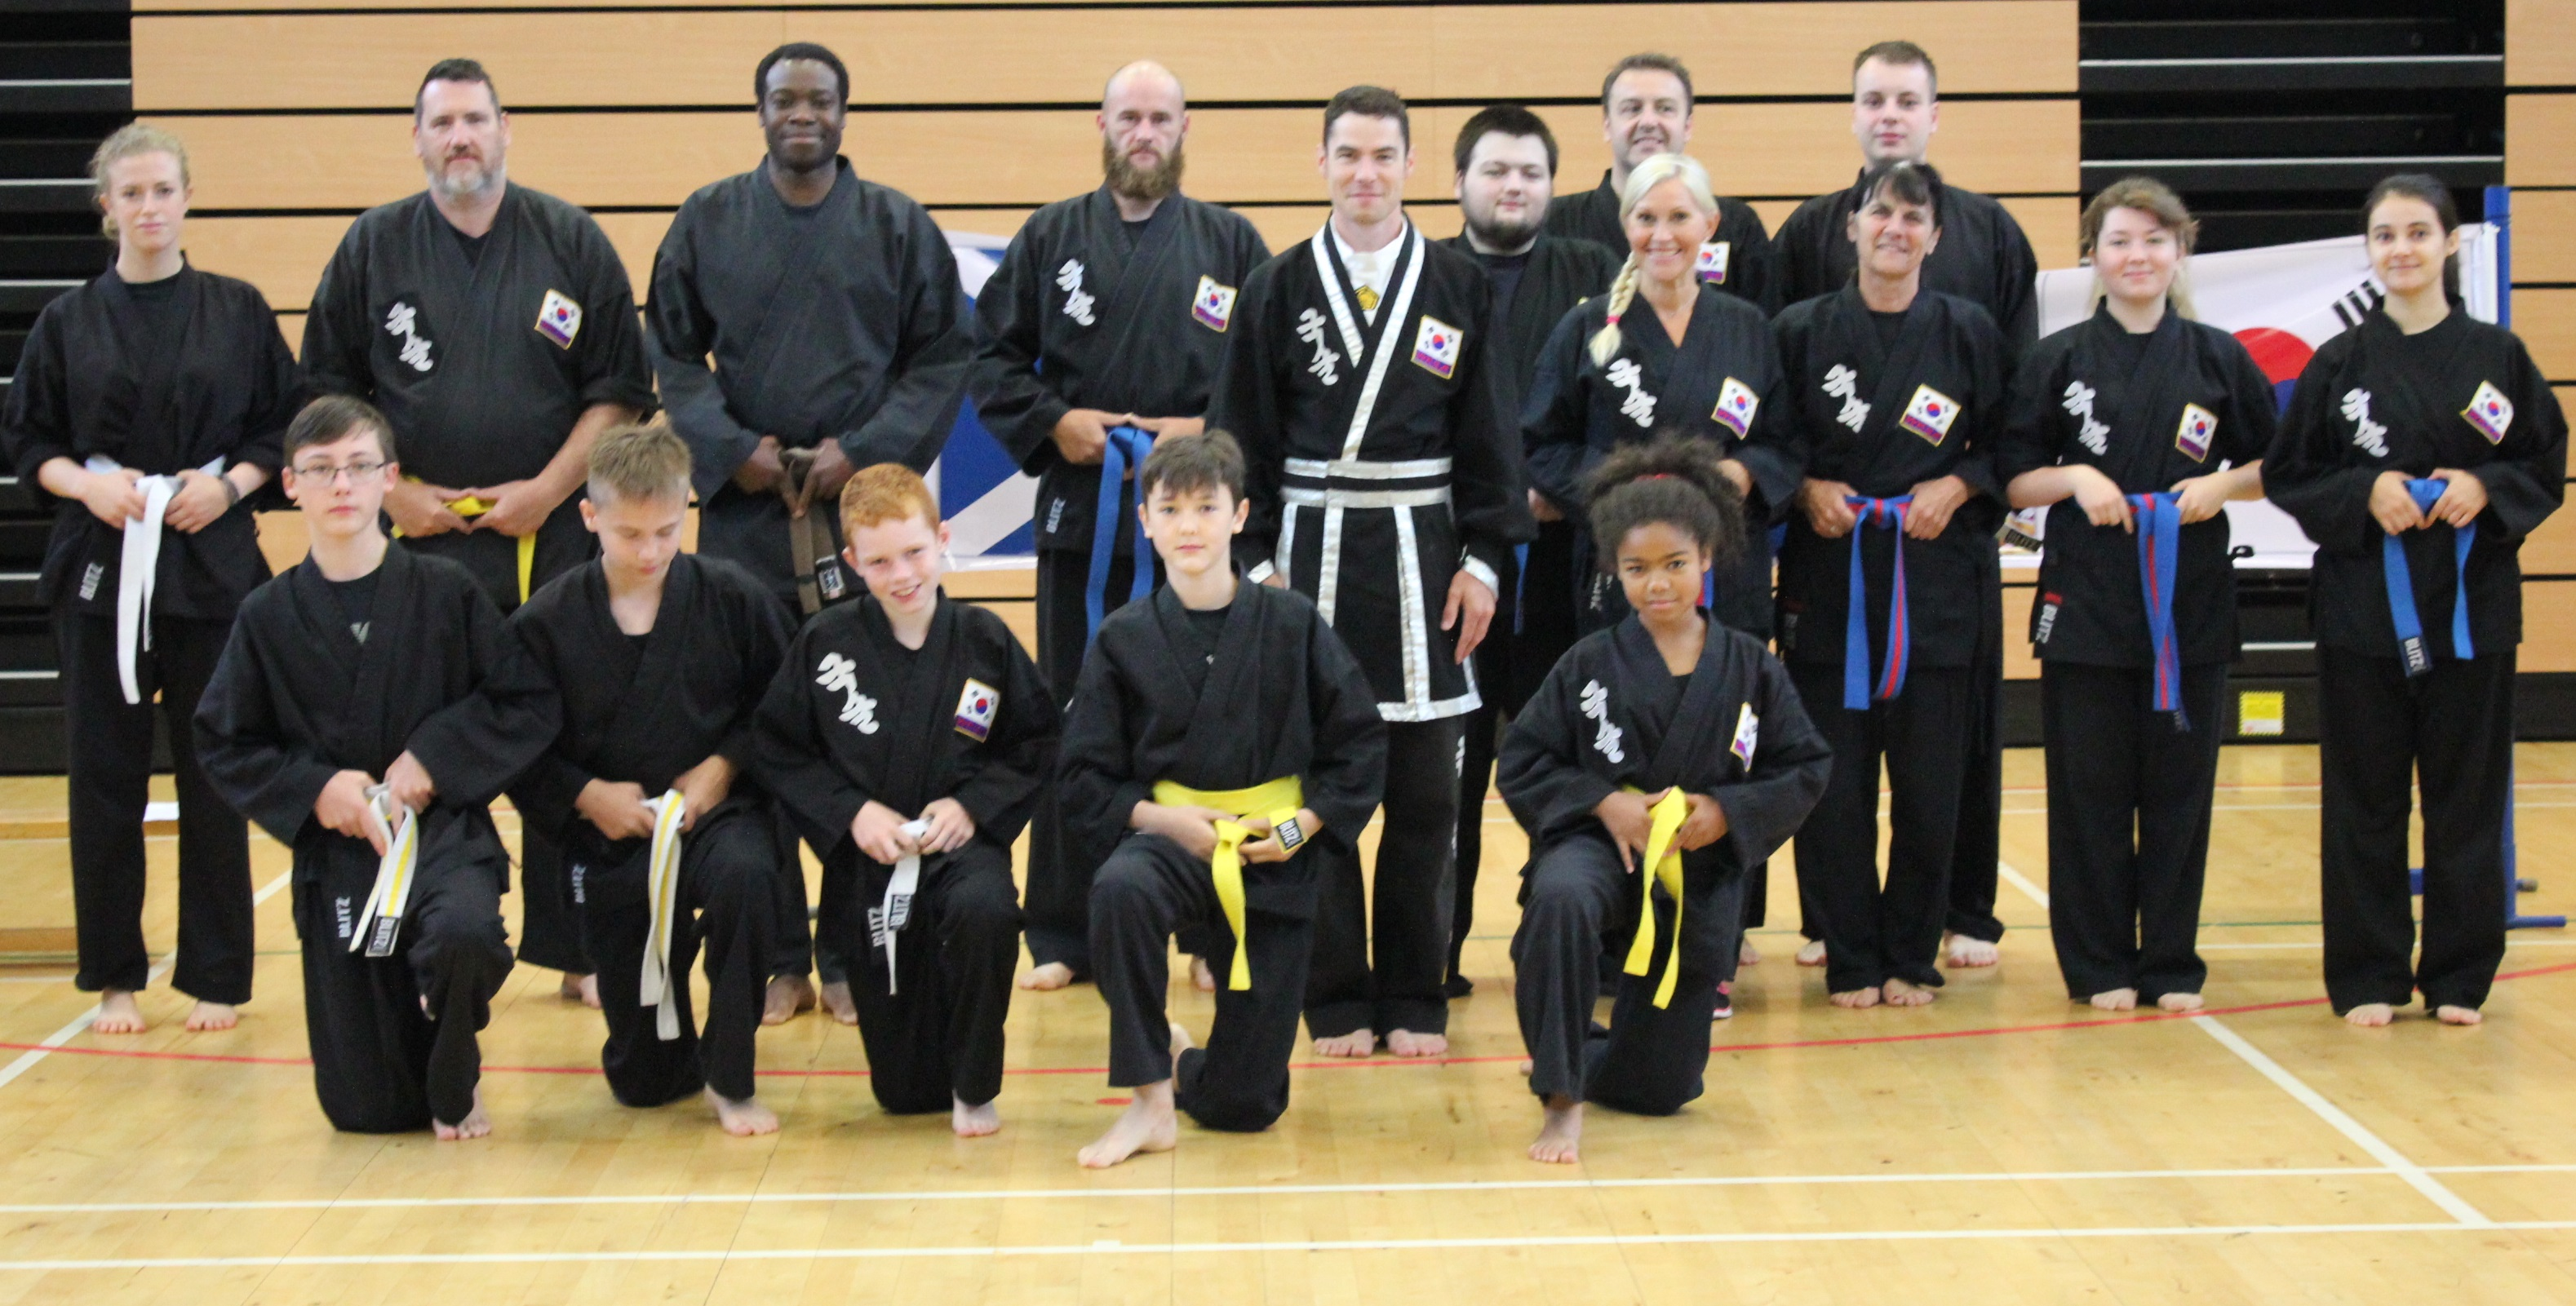 students of Kuk sool won perth martial a